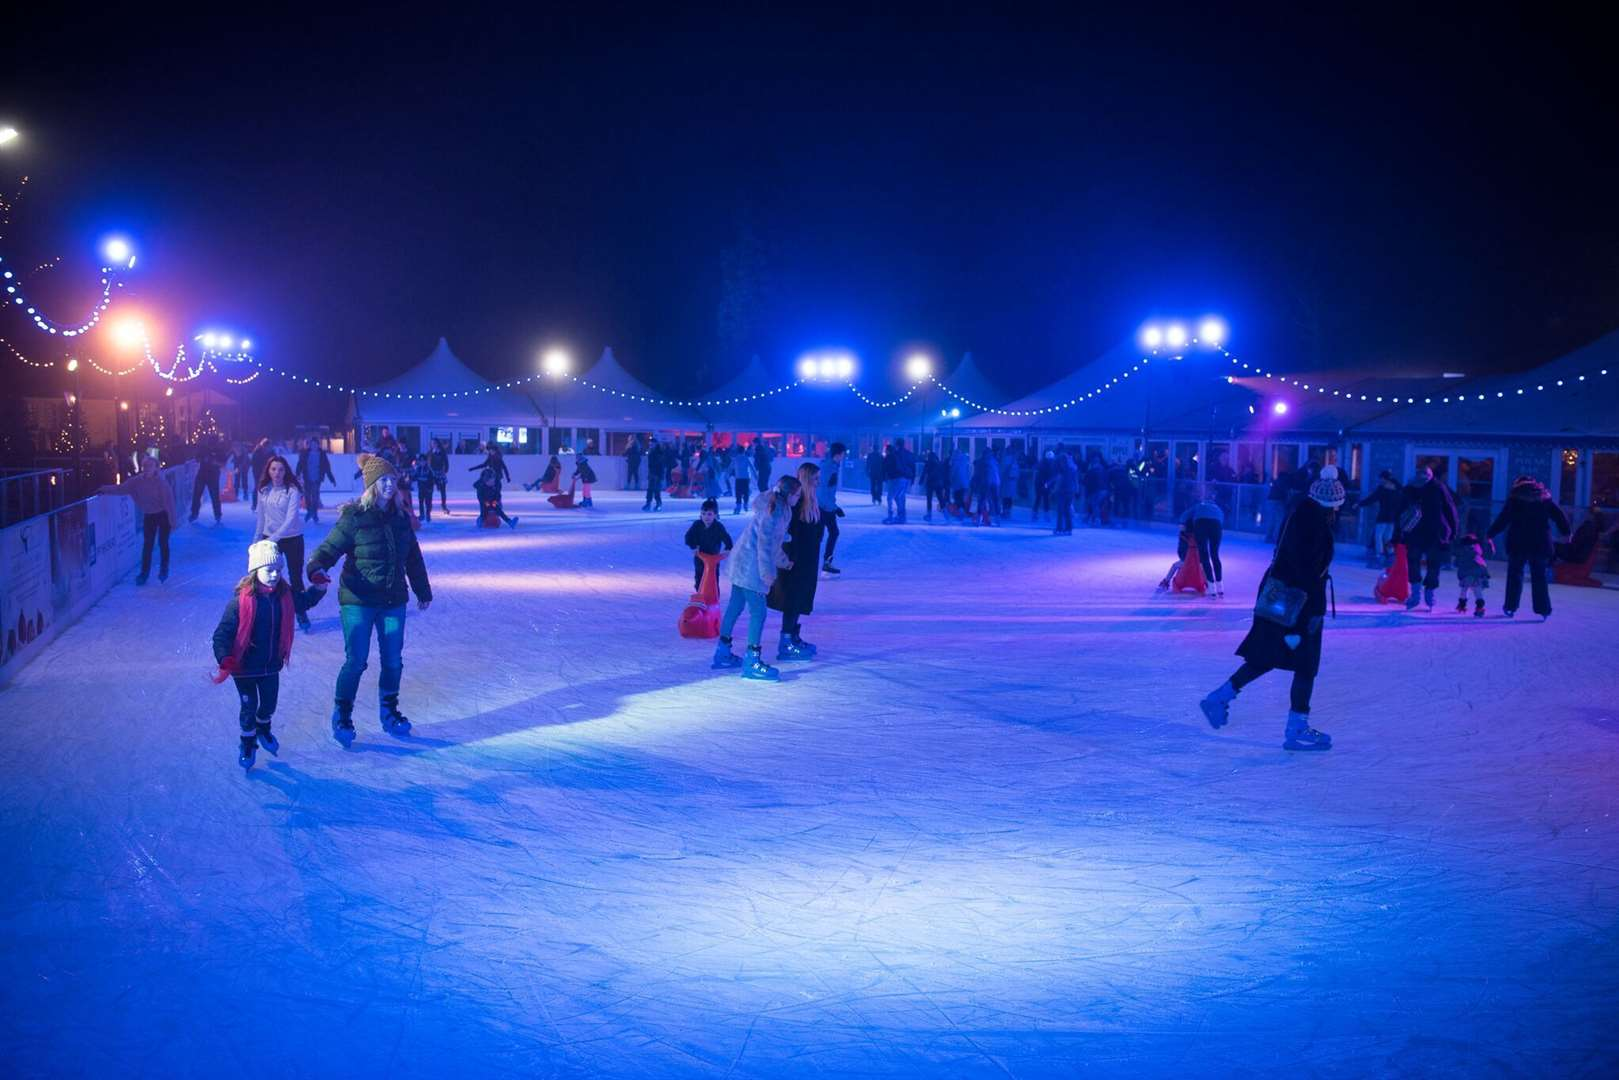 Tickets are on sale for this winter's ice rink at Tunbridge Wells